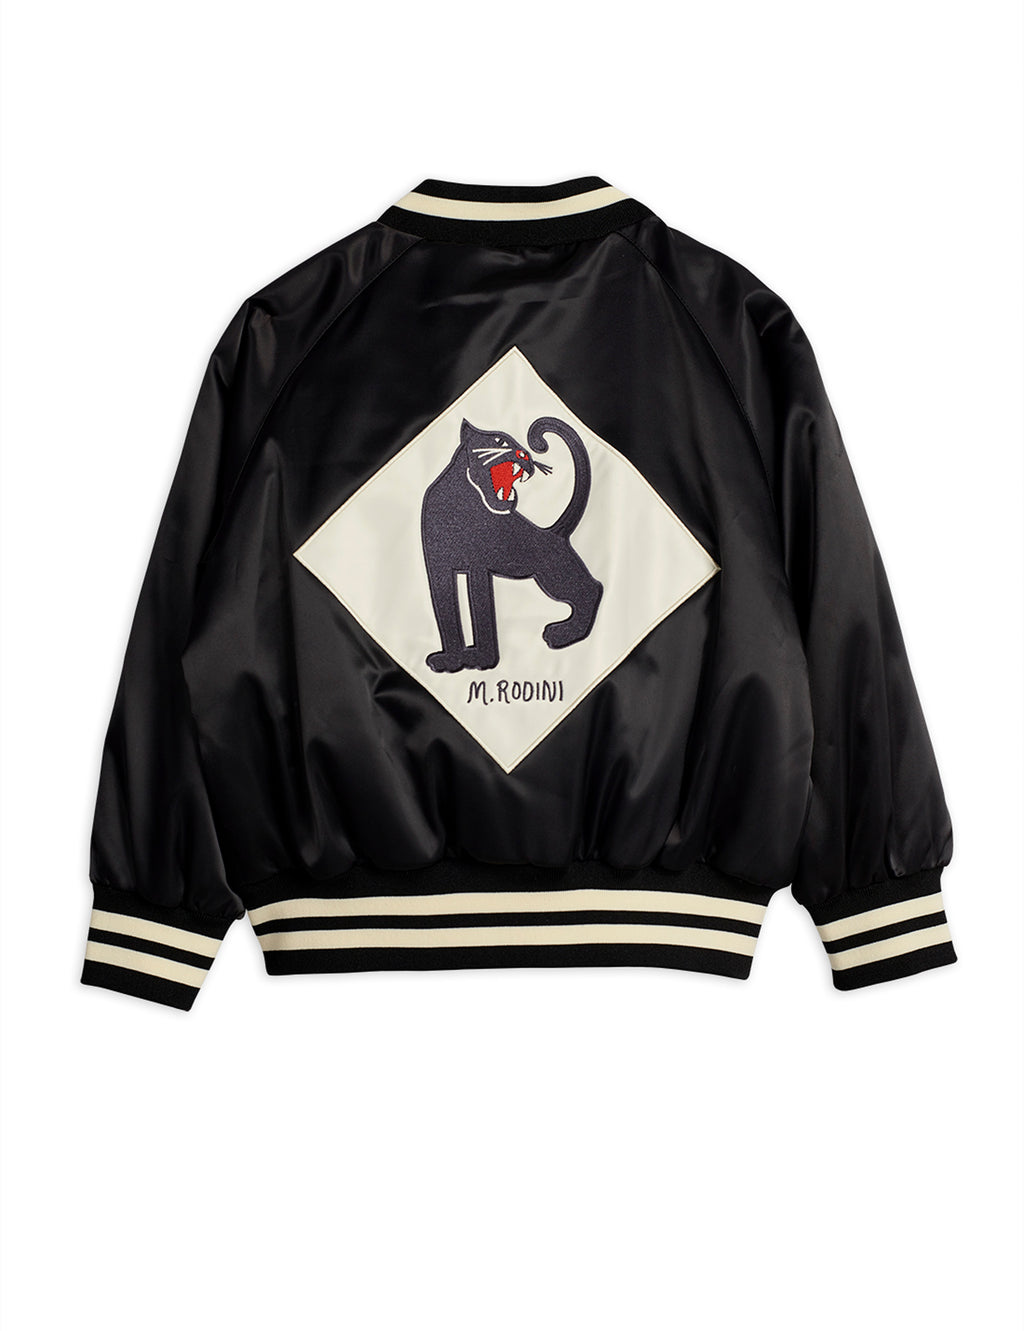 Black baseball jacket made with recycled polysatin with a water-repellent BIONIC-FINISH® ECO coating. The jacket features the iconic panther on the back and at the front.